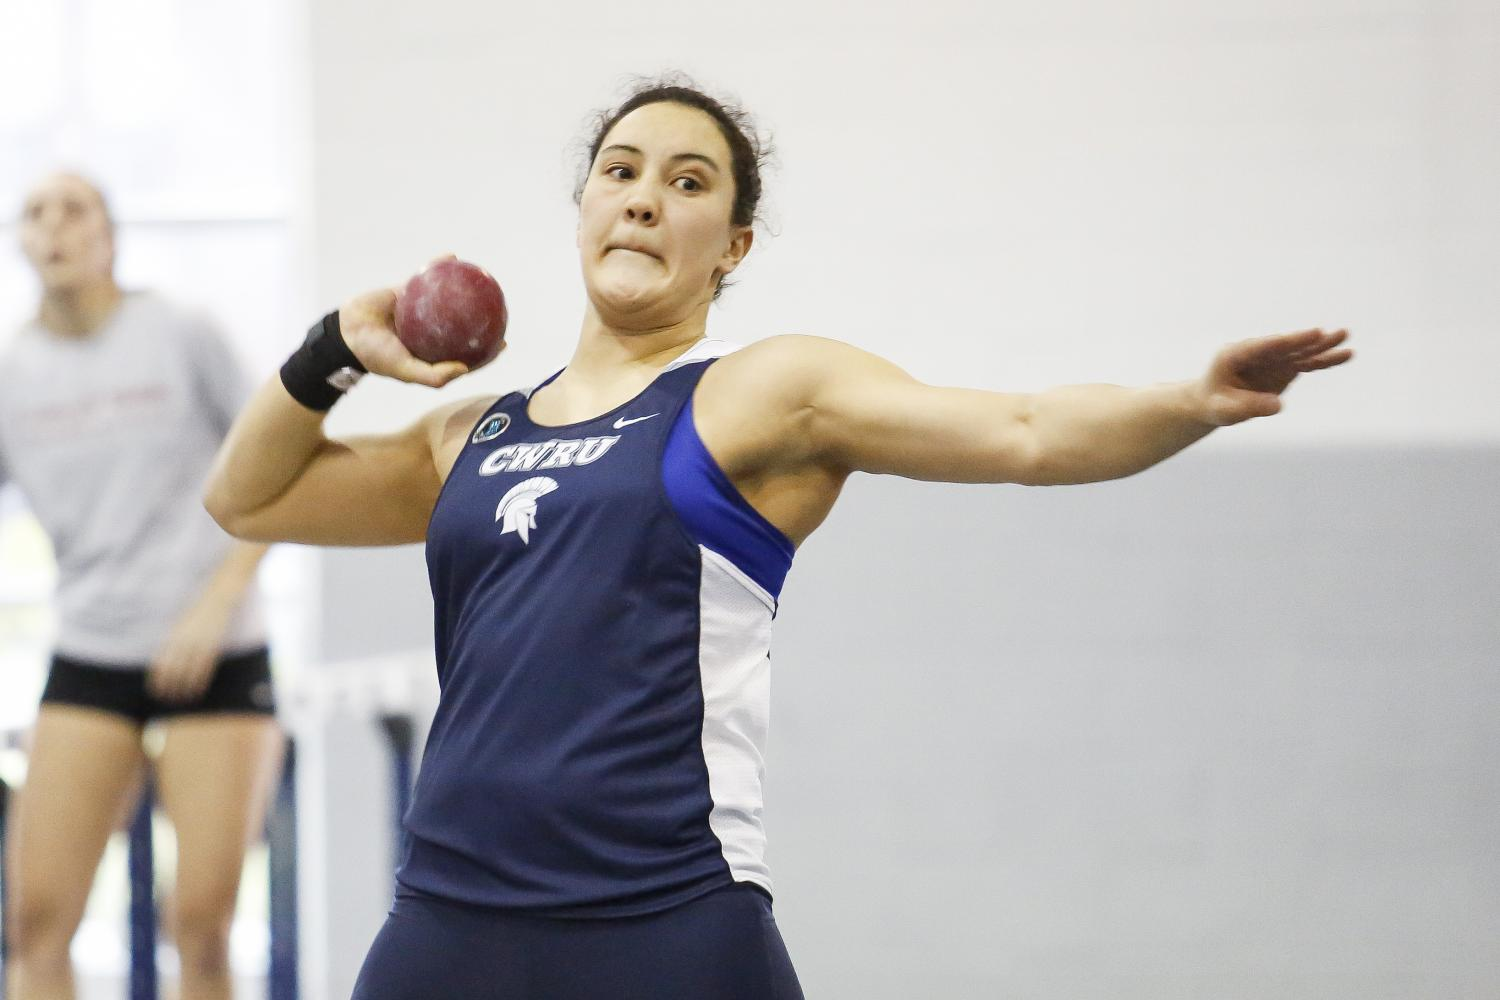 Third-year+thrower+Cassandra+Laios+%28top%29+and+fourth-year+sprinter+Nathaniel+Wahner+%28bottom%29+won+a+combined+seven+University+Athletic+Association+titles+for+the+track+and+field+team.